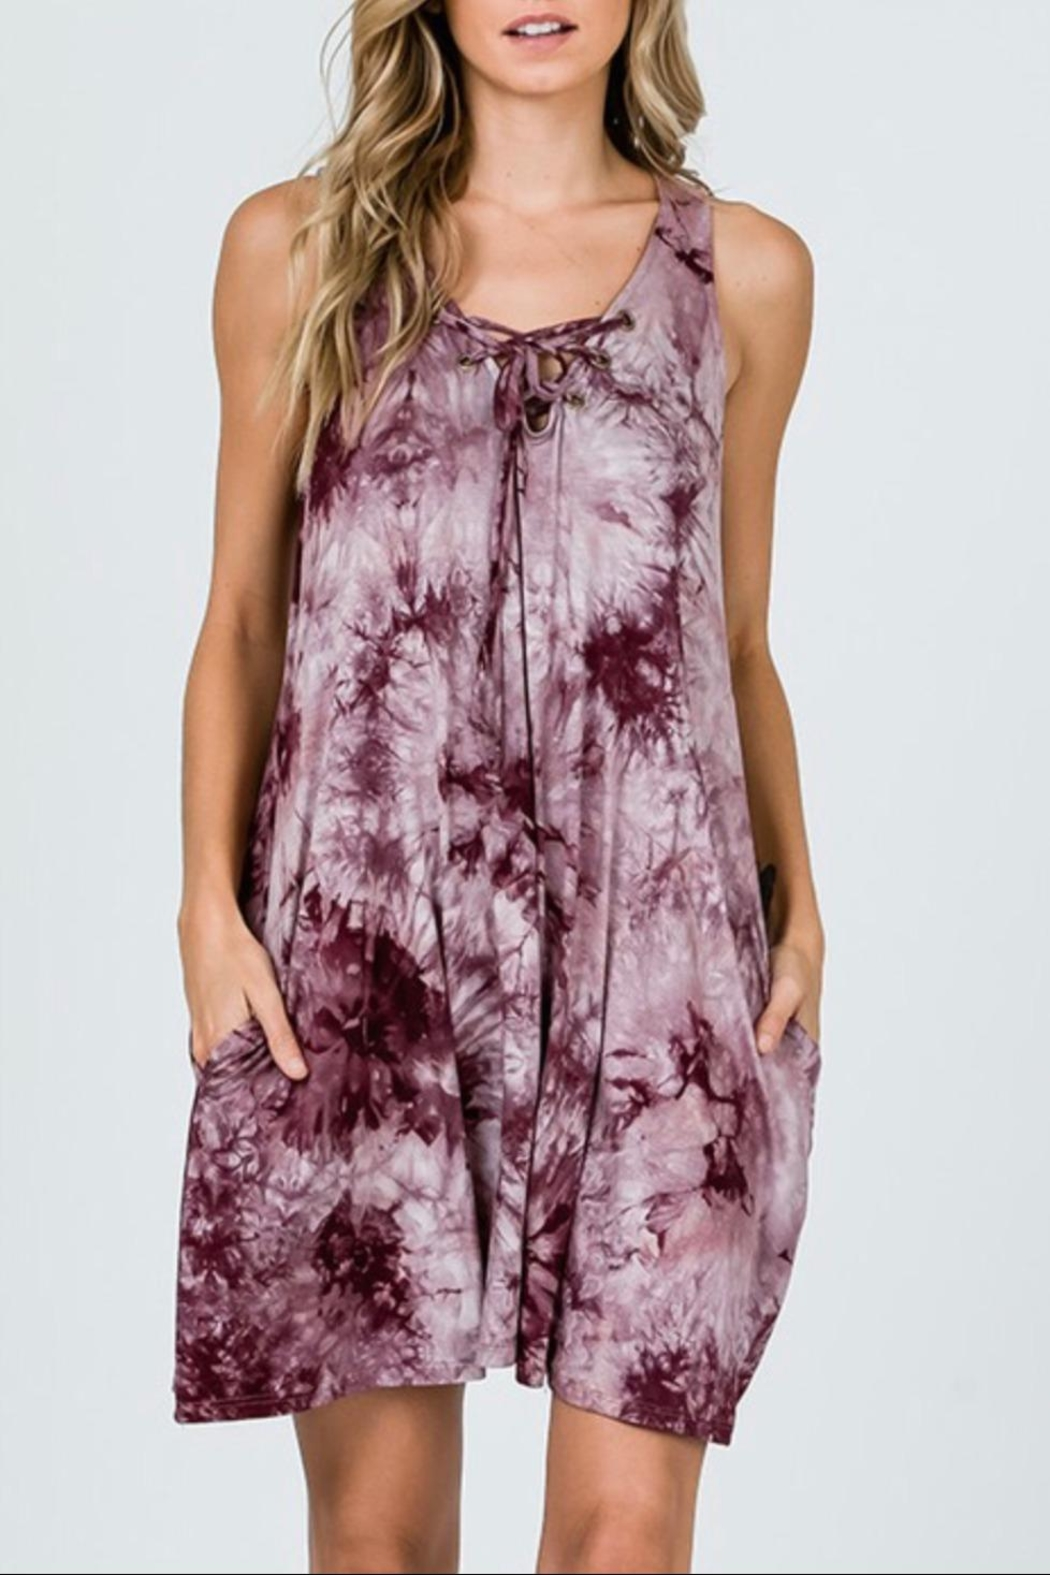 CY Fashion Tie-Dye Swing Dress - Main Image